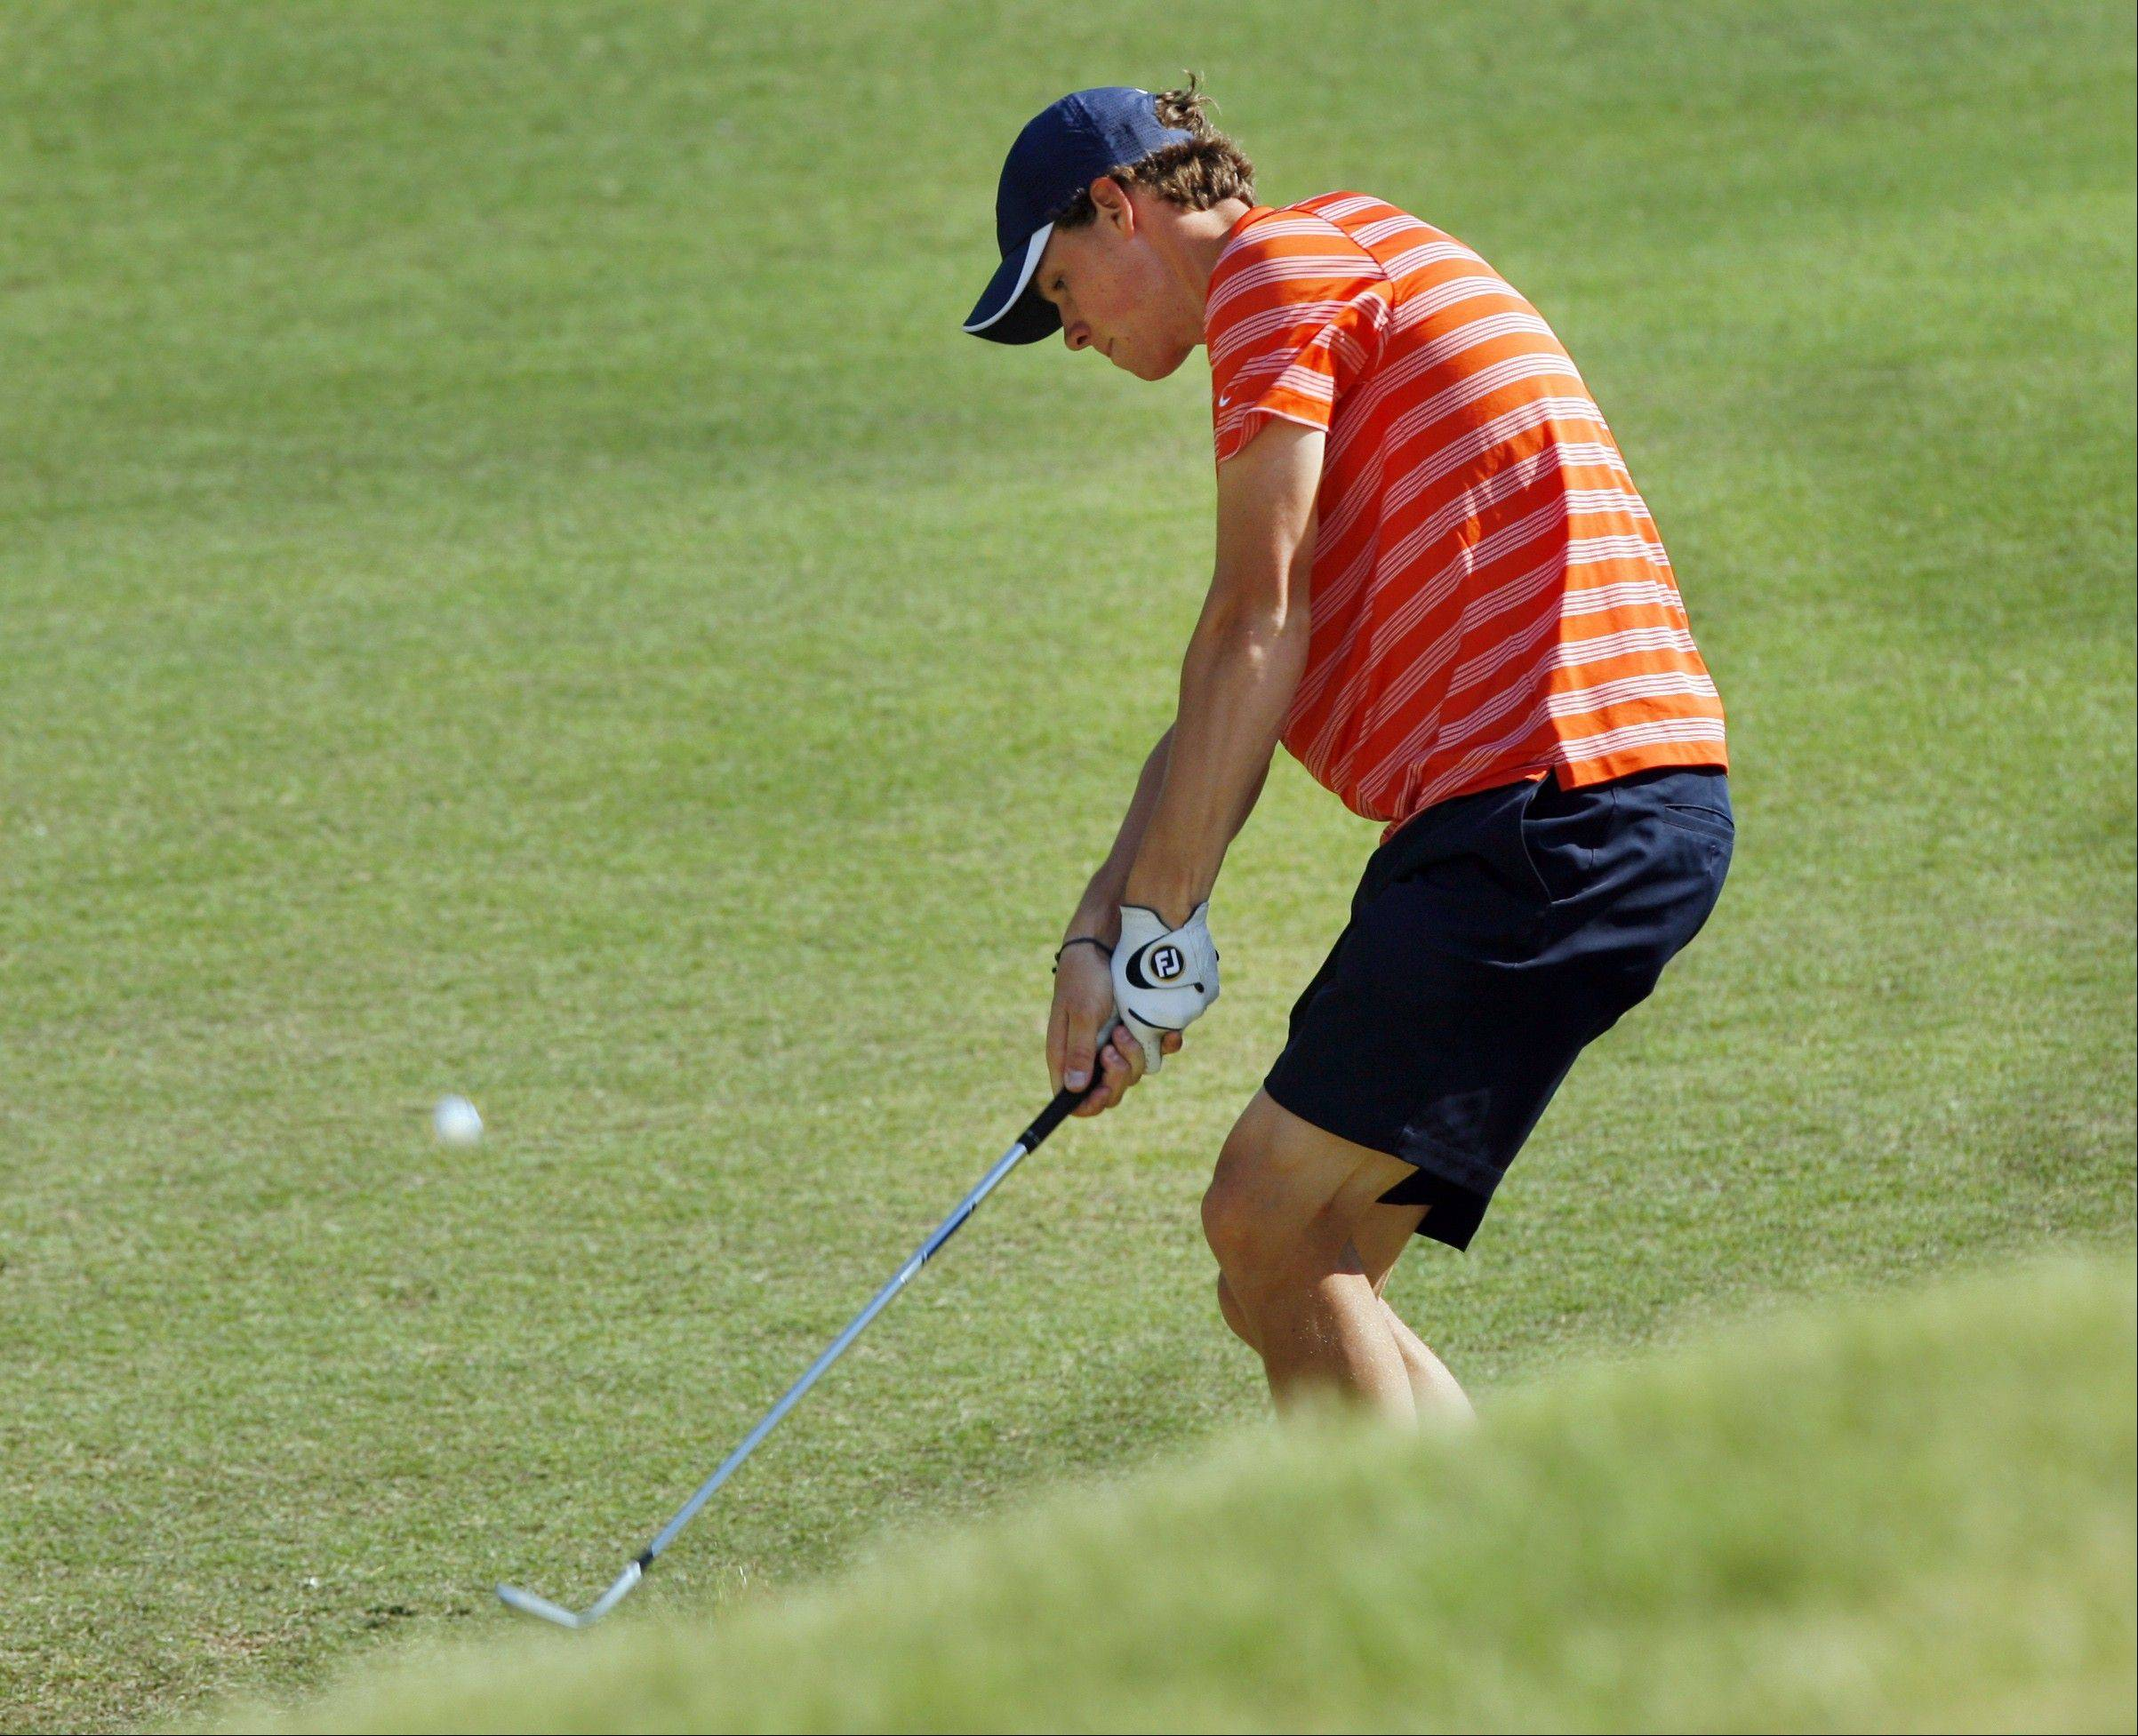 Illinois golfer Thomas Pieters won the NCAA individual title as a sophomore last May. Pieters plans to turn pro after his junior season this spring.